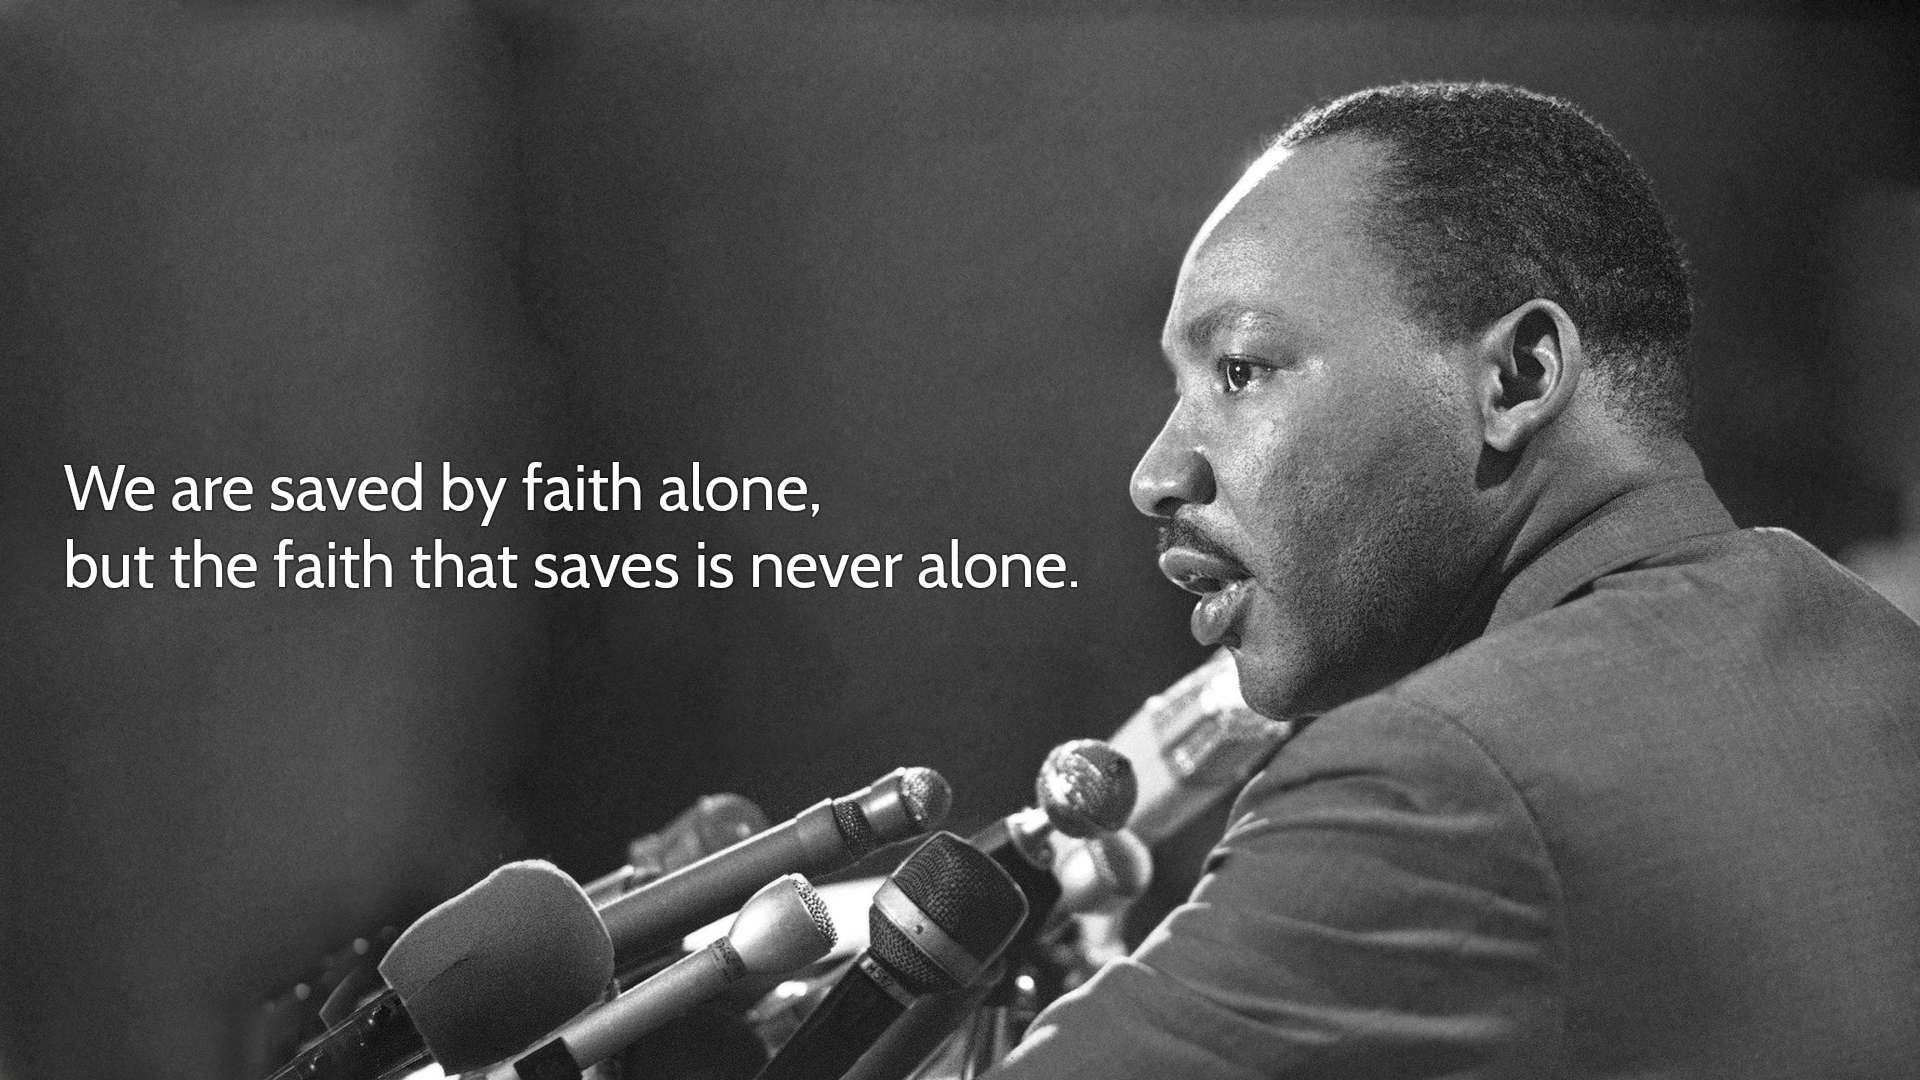 Martin Luther King Quotes | The 10 Best Martin Luther King Quotes Quotereel